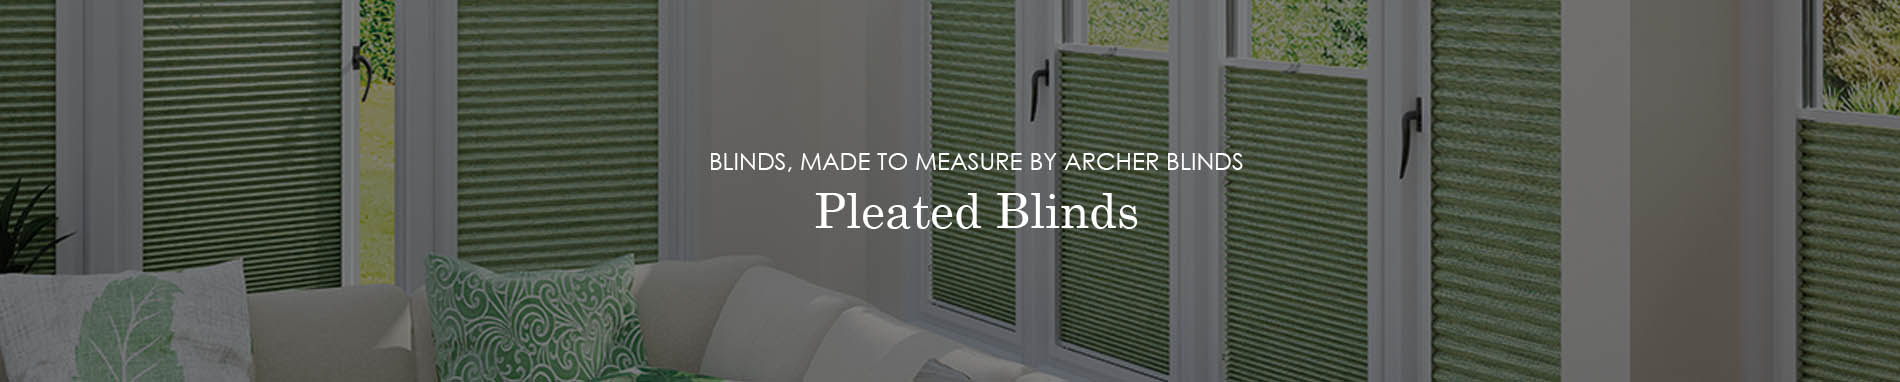 pleated blinds banner